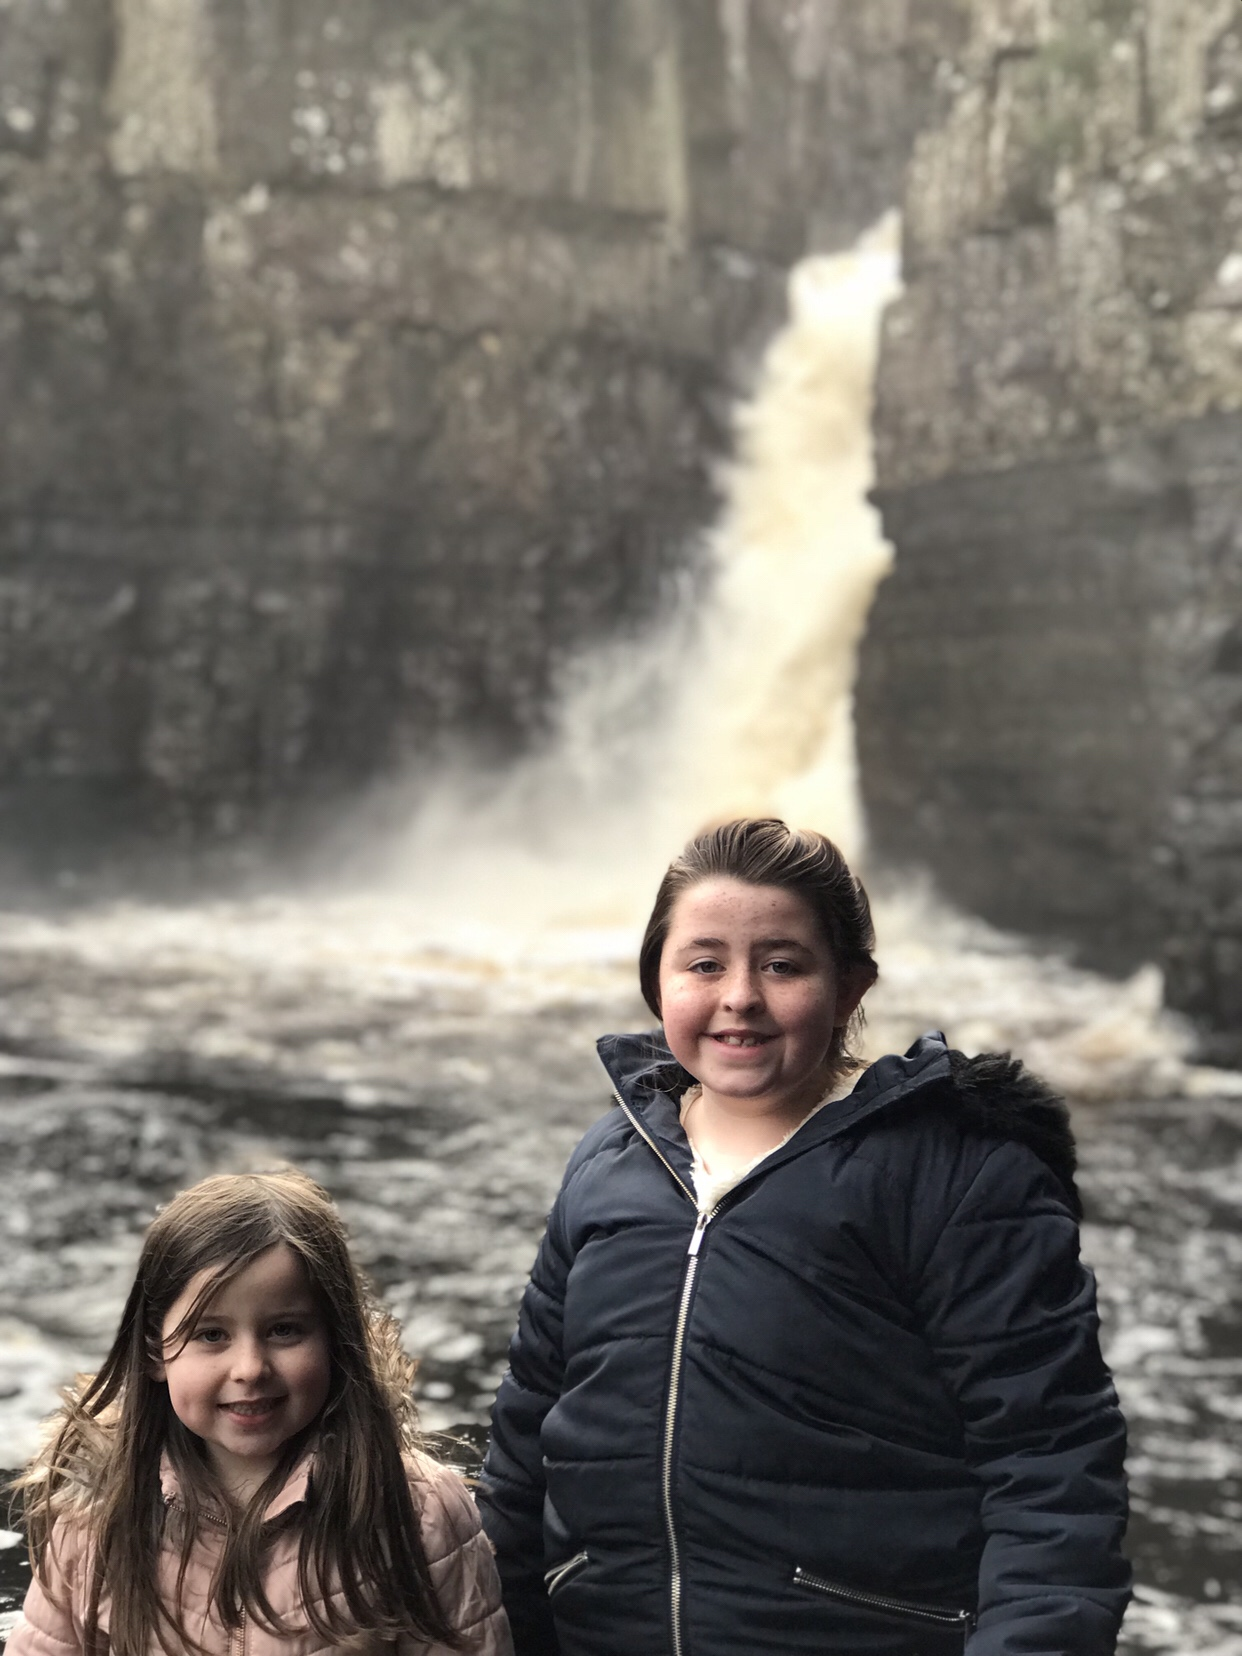 An afternoon out to High Force & Bowlees Picnic Area